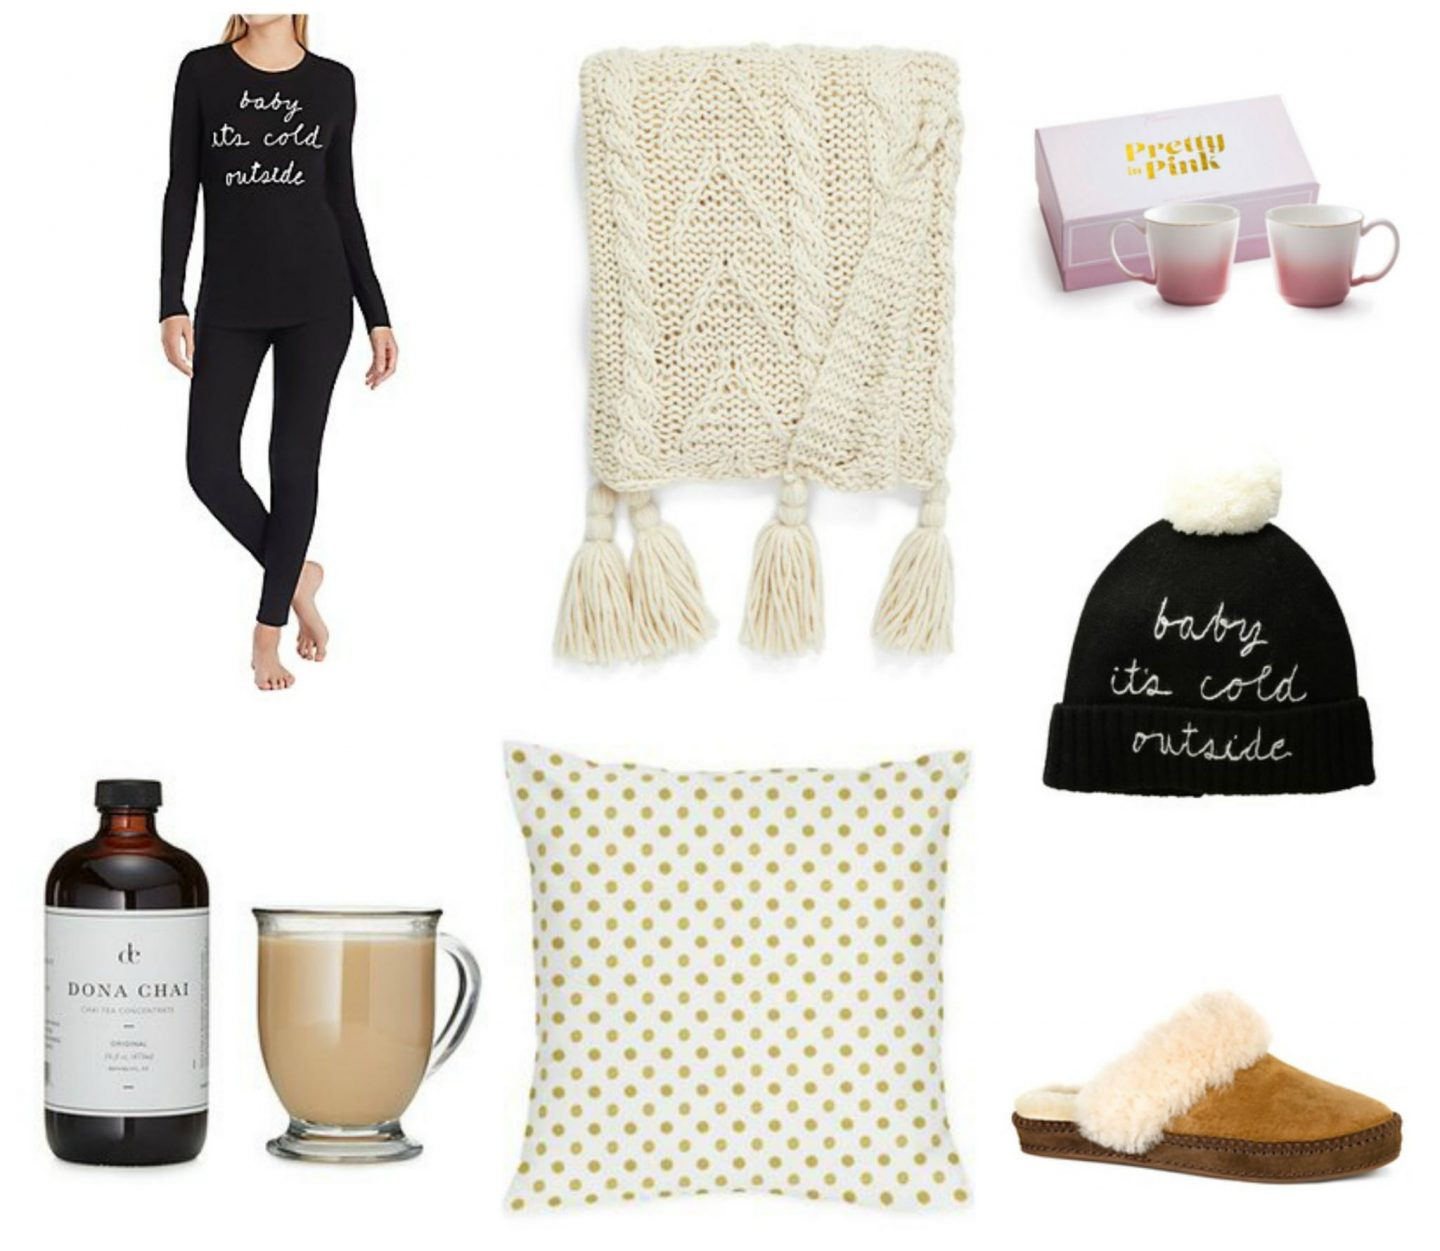 Tuesday's Cravings: At Home-@headtotoechic-Head to Toe Chic